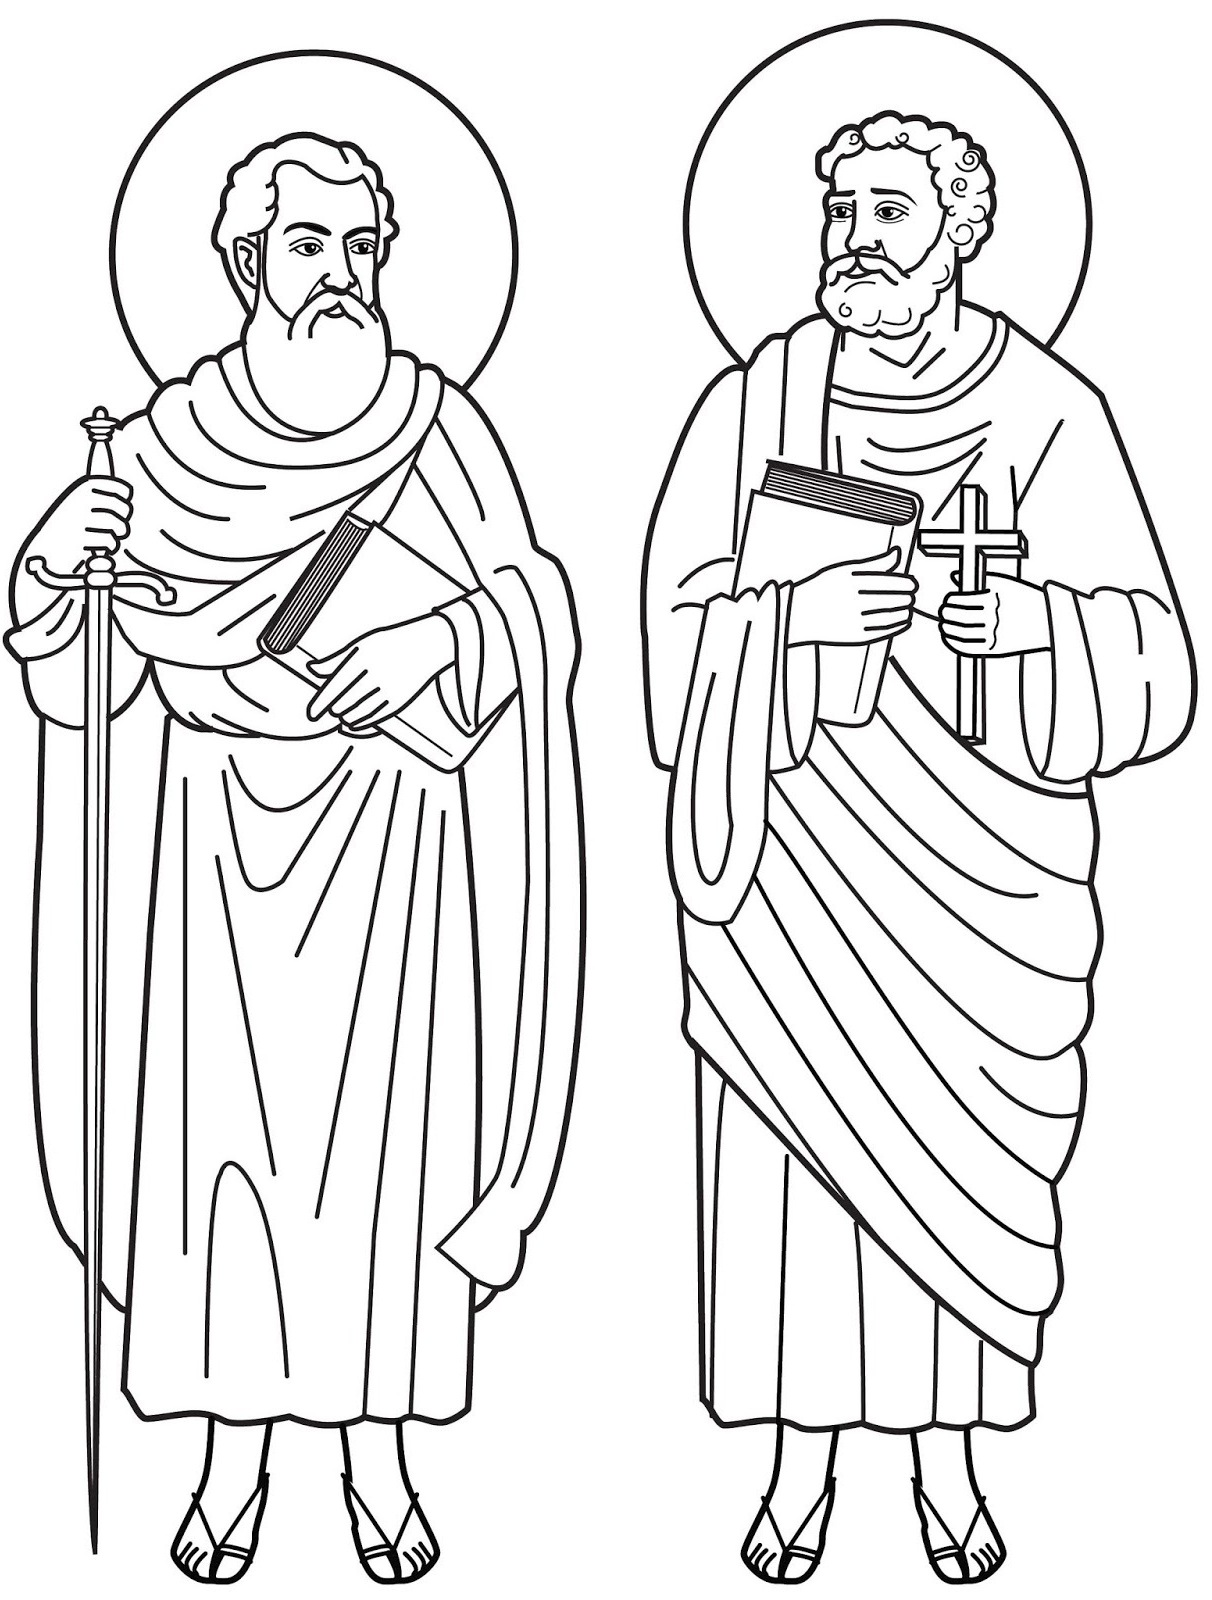 st peter coloring pages - photo#10